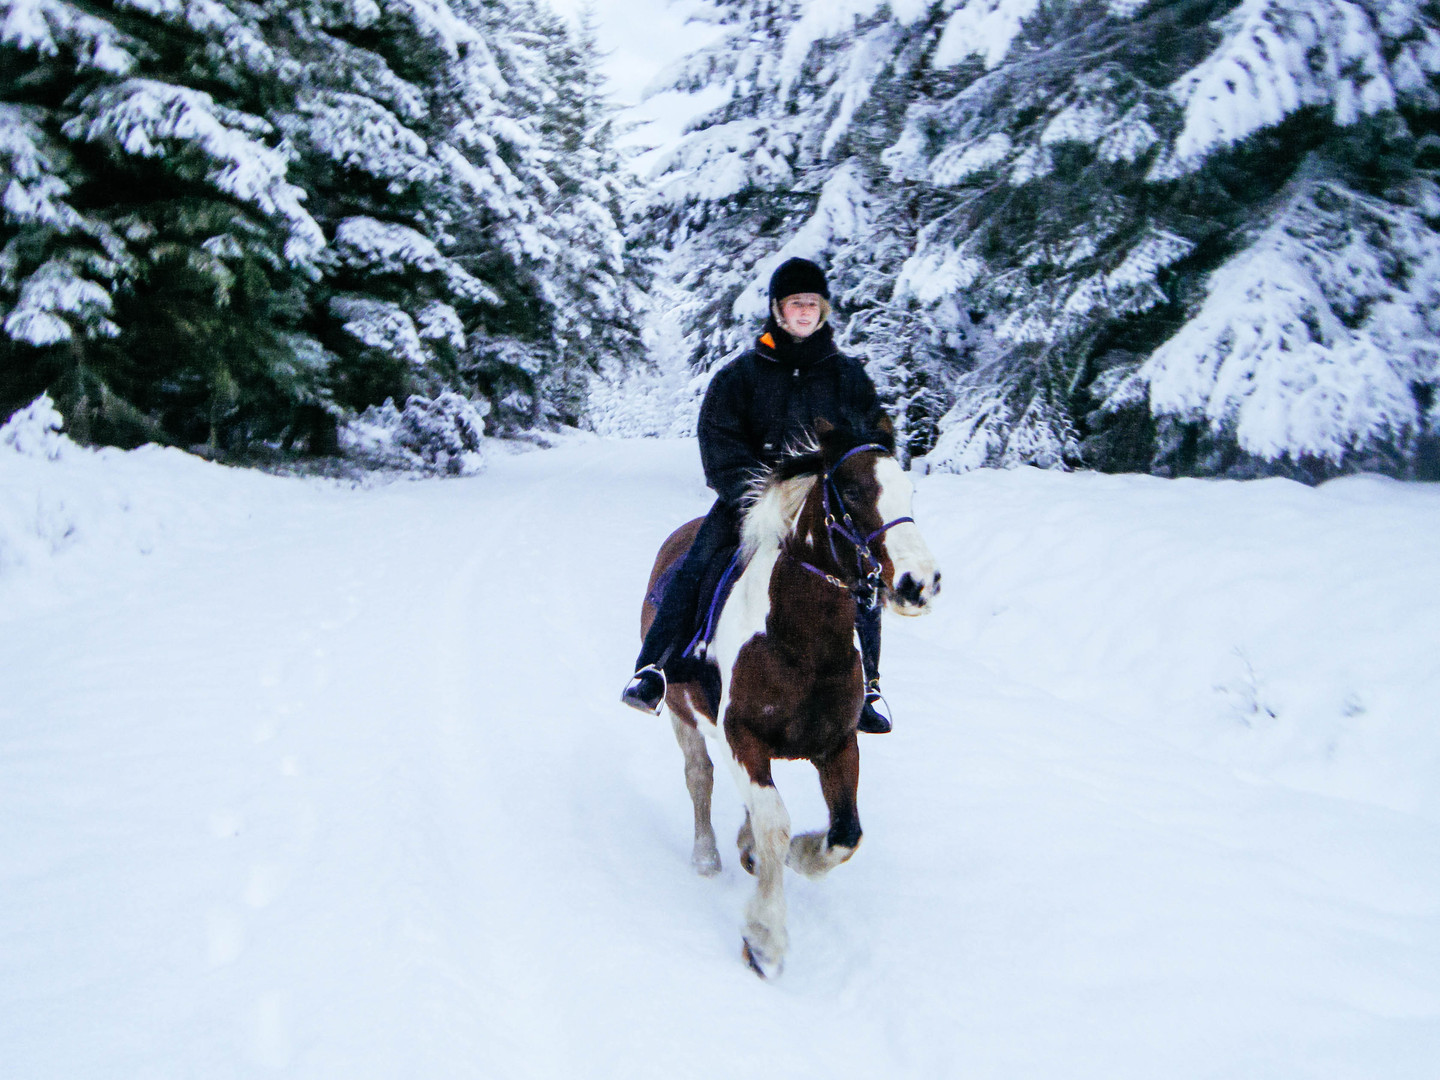 Cantering through a snowy forest on Annie